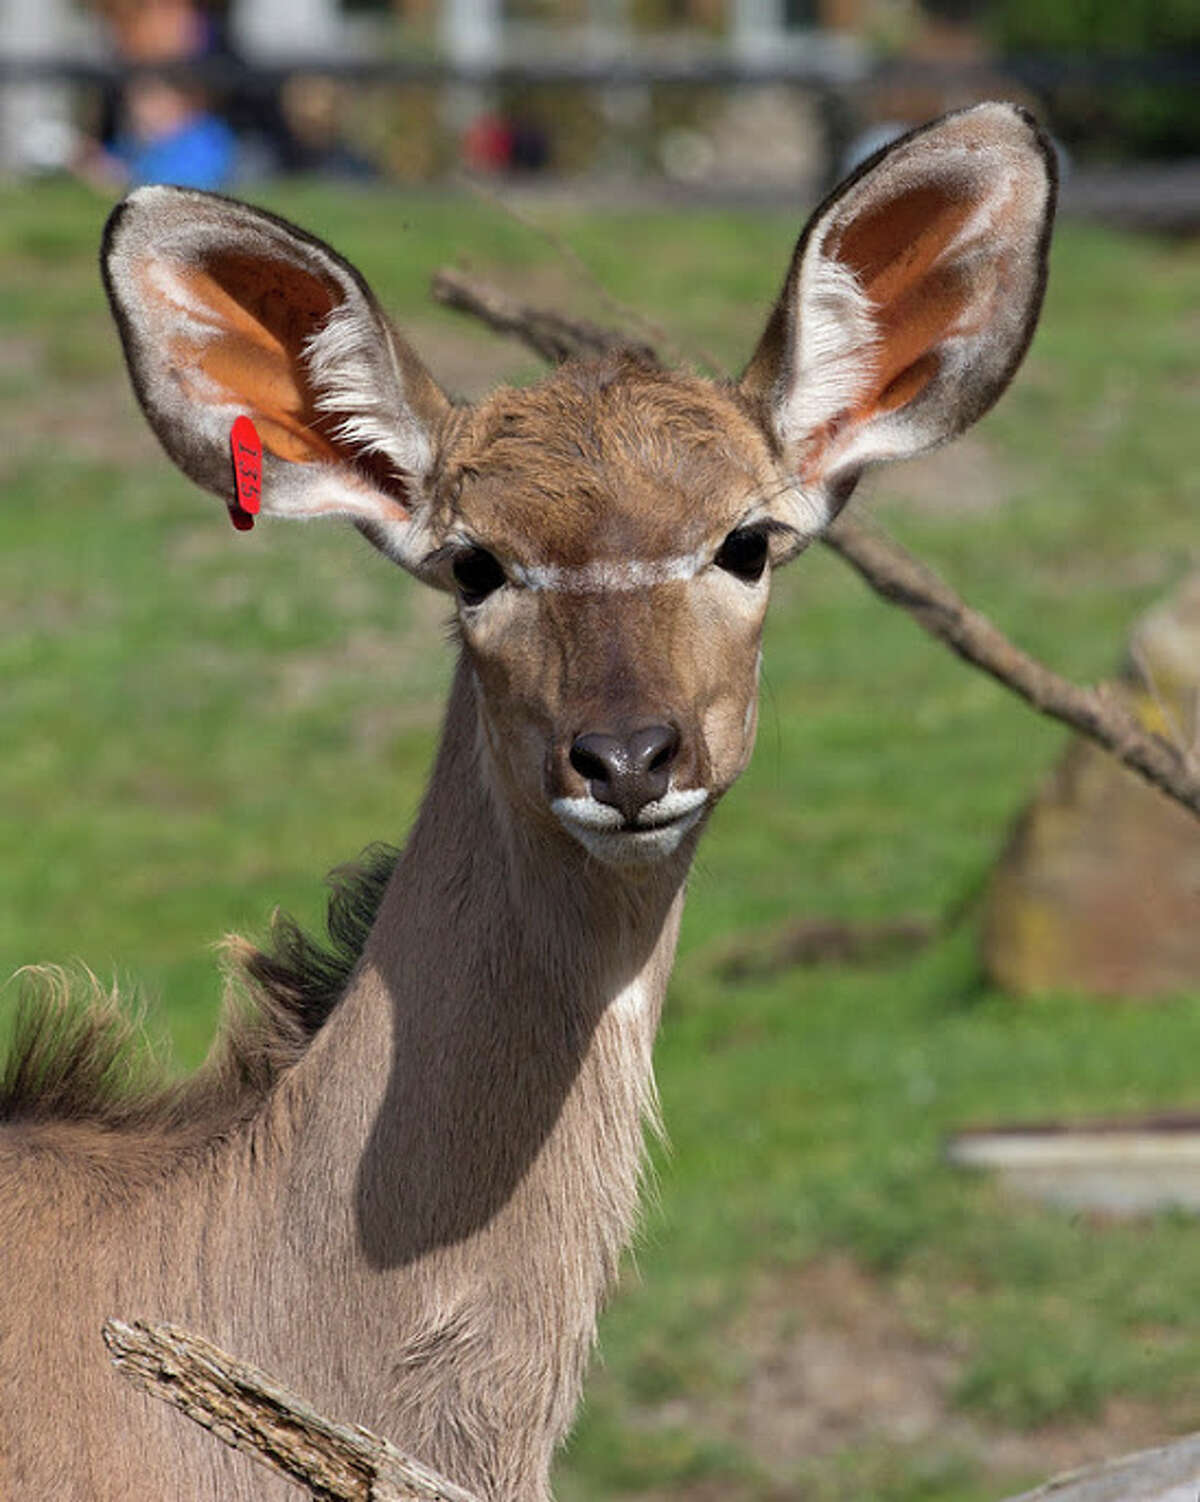 The Greater Kudu has been dubbed Madison, after pitcher Madison Bumgarner.